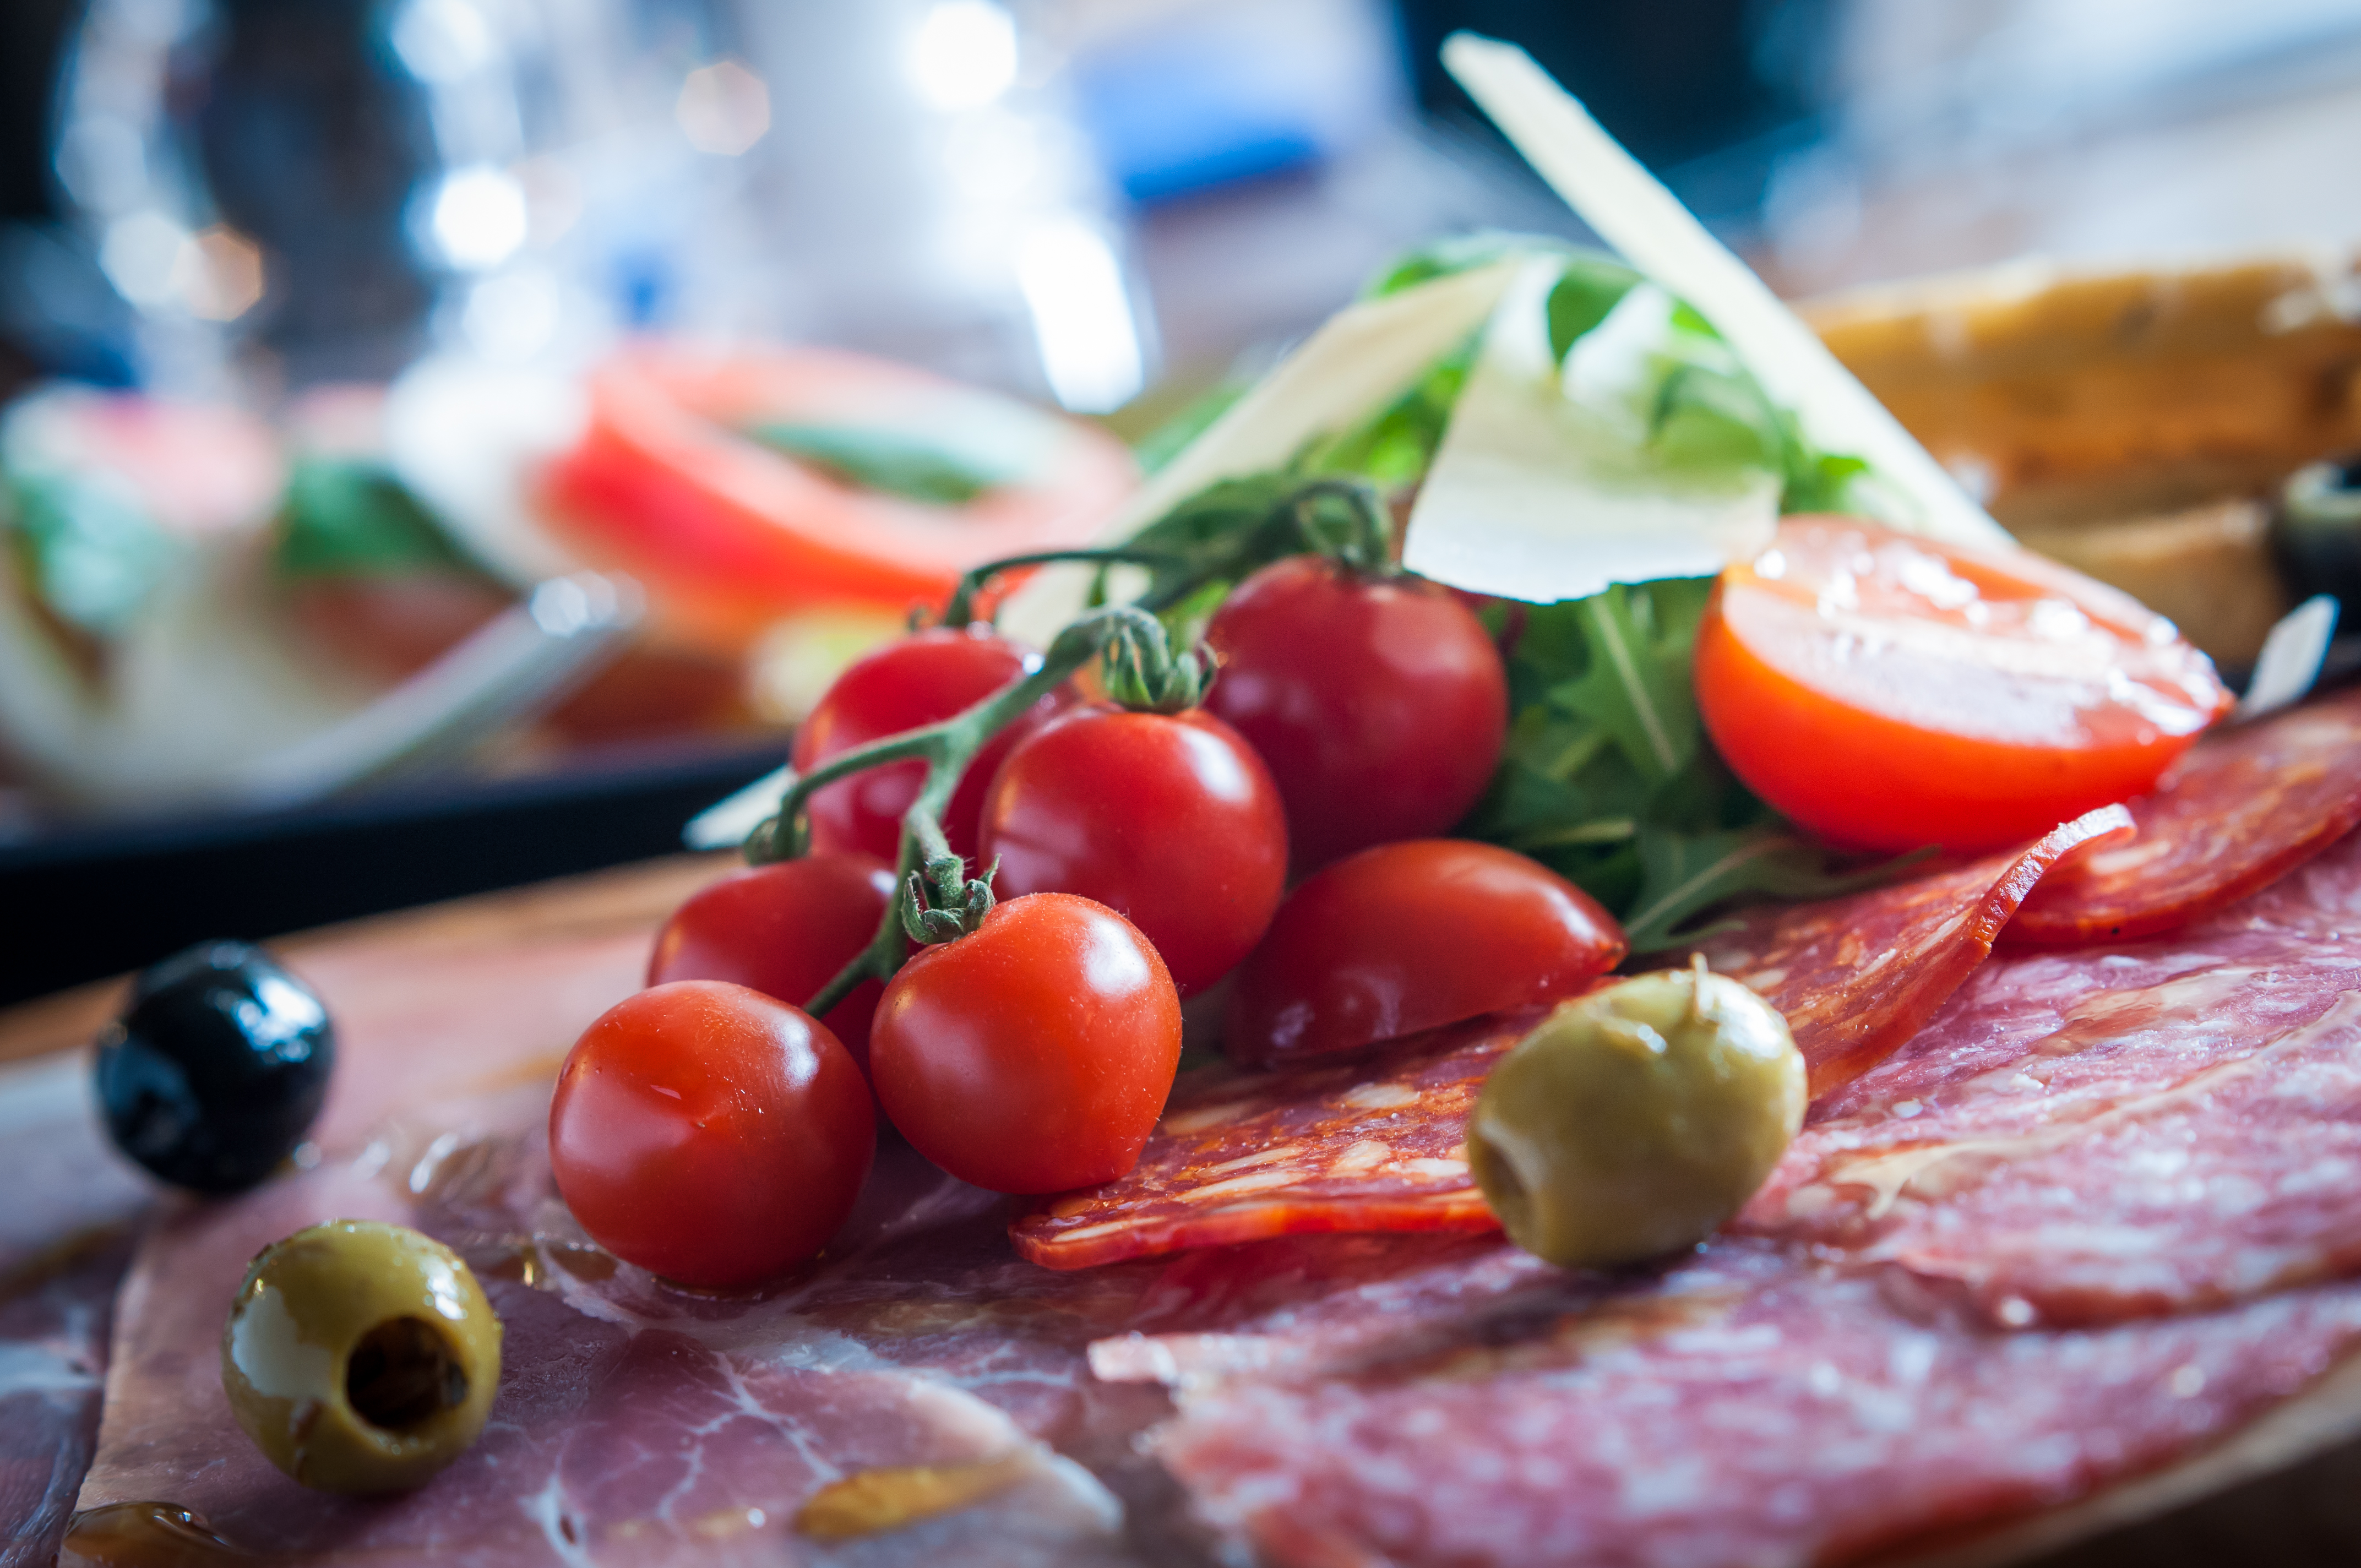 Antipasti platter with vine tomatoes, olives and salami